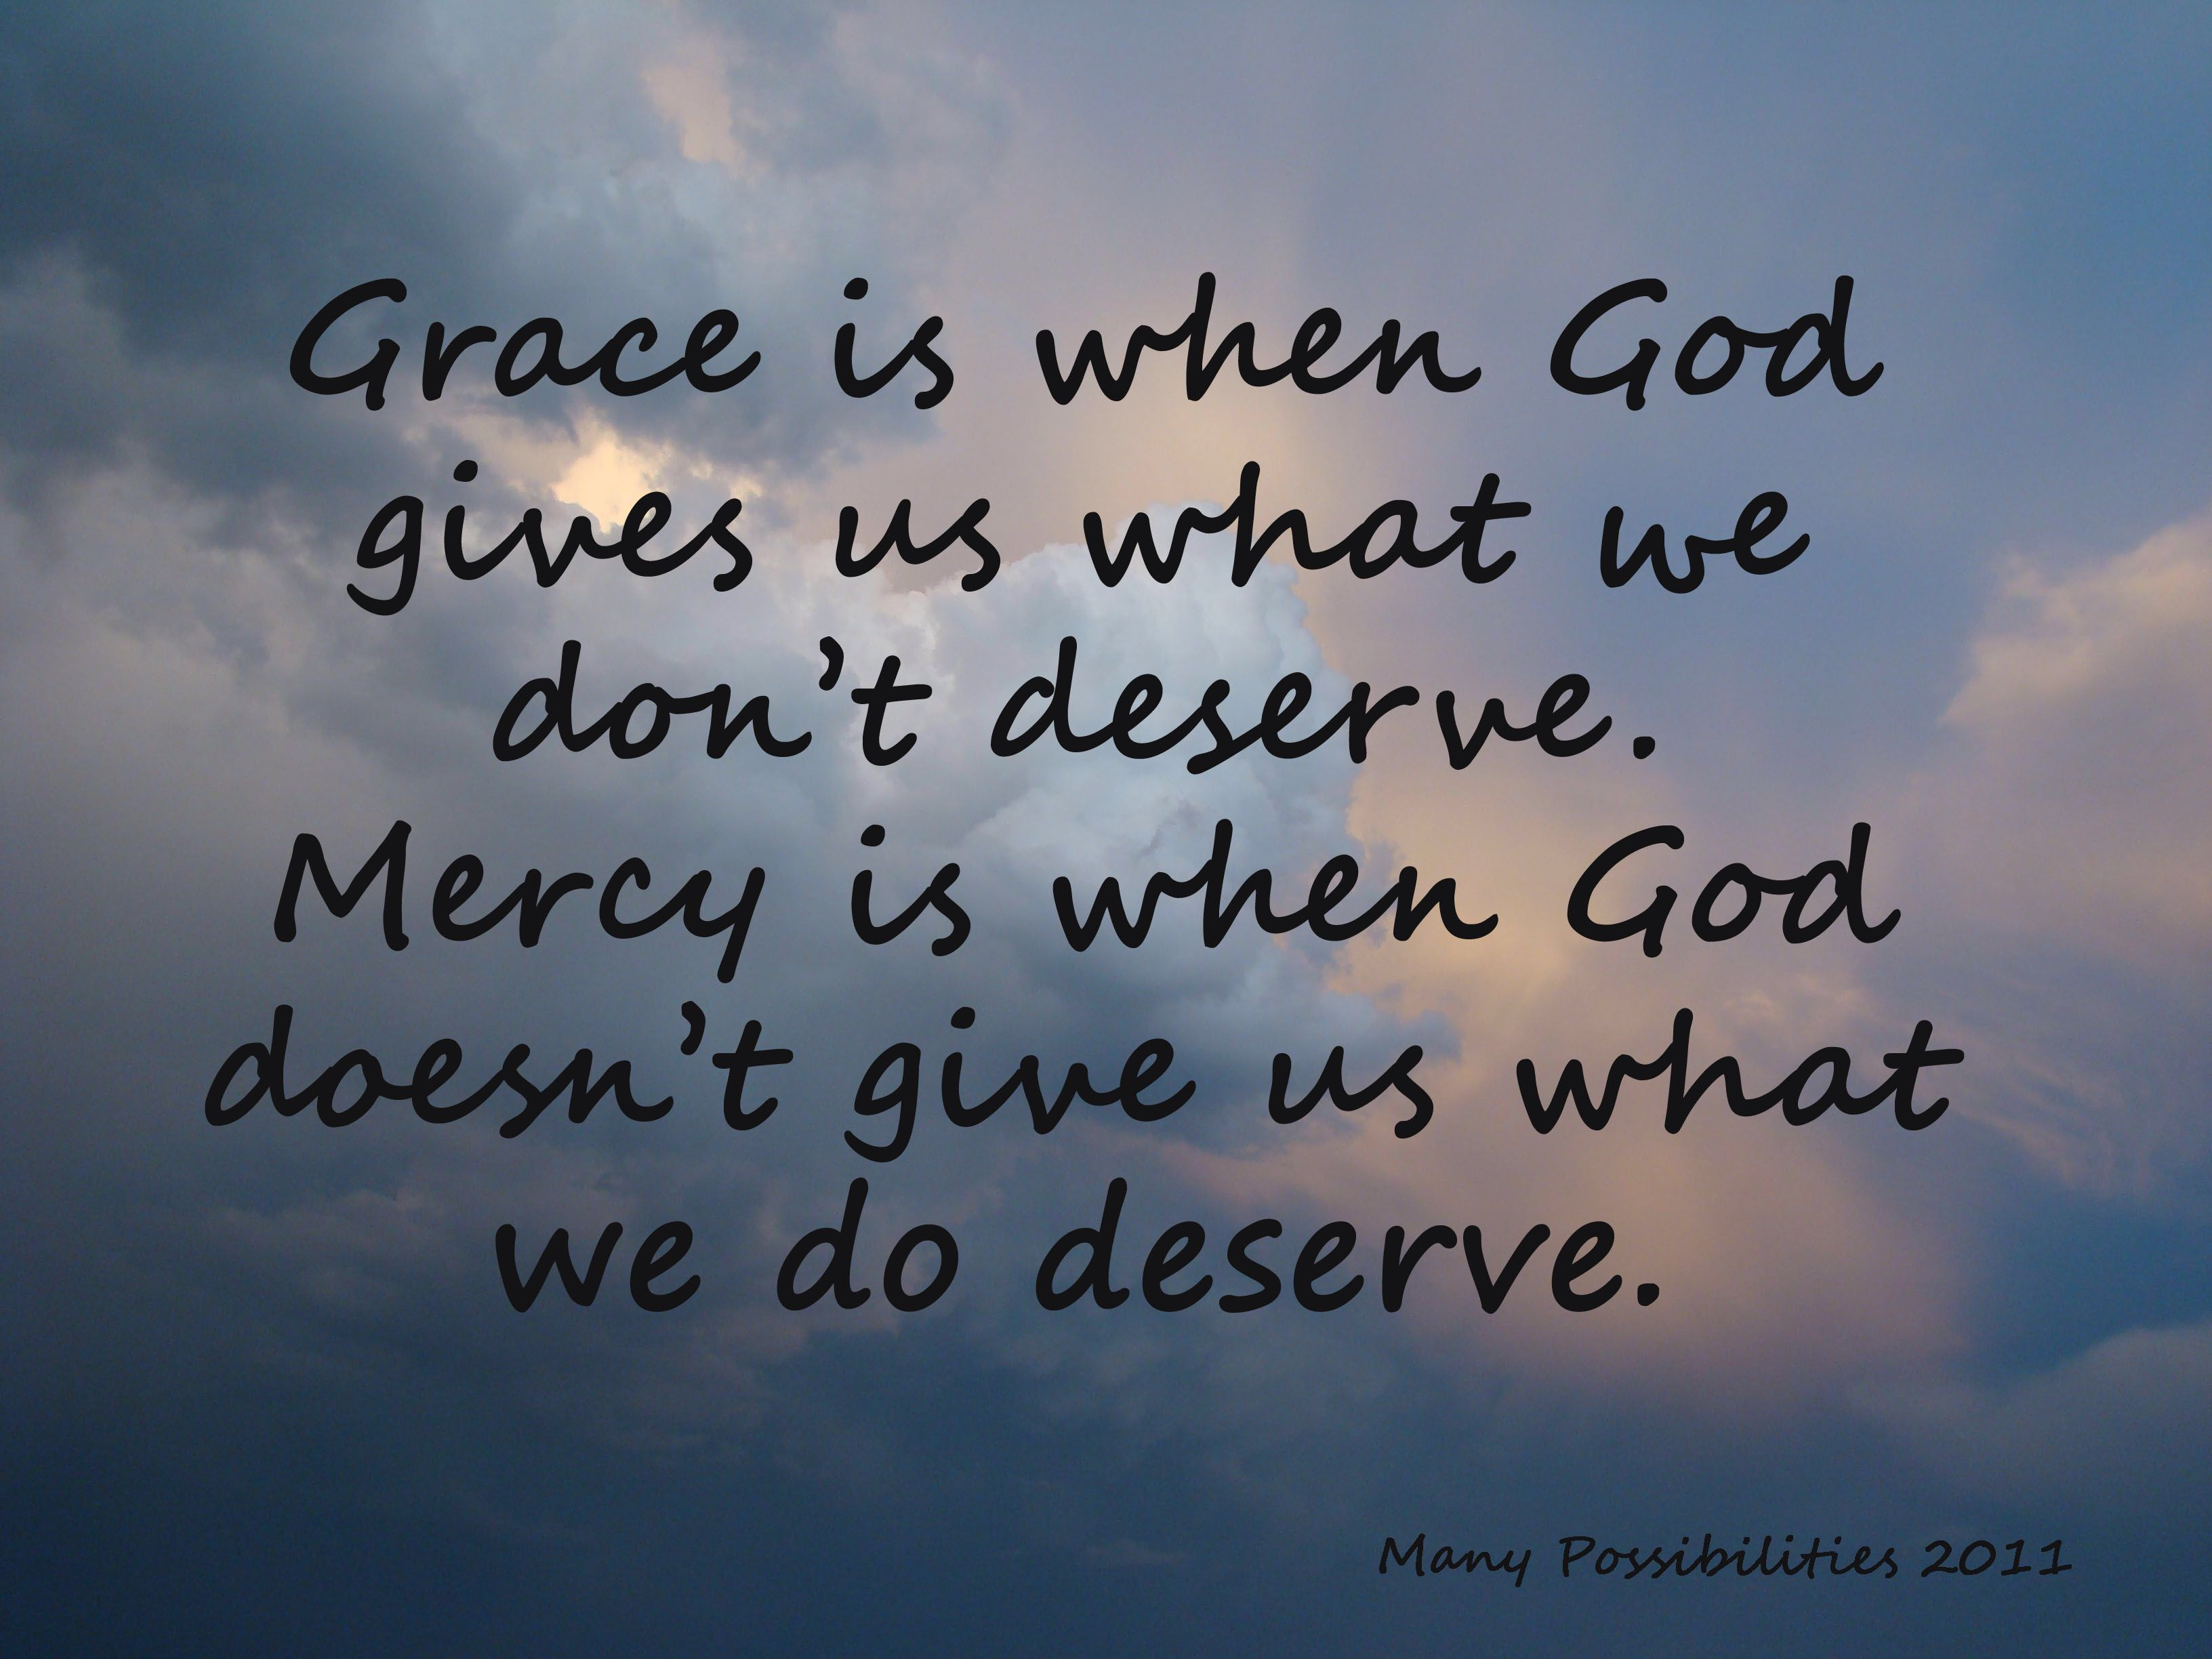 God's Grace Quotes Image From Httpgodsgracefaceswpcontentuploads201409